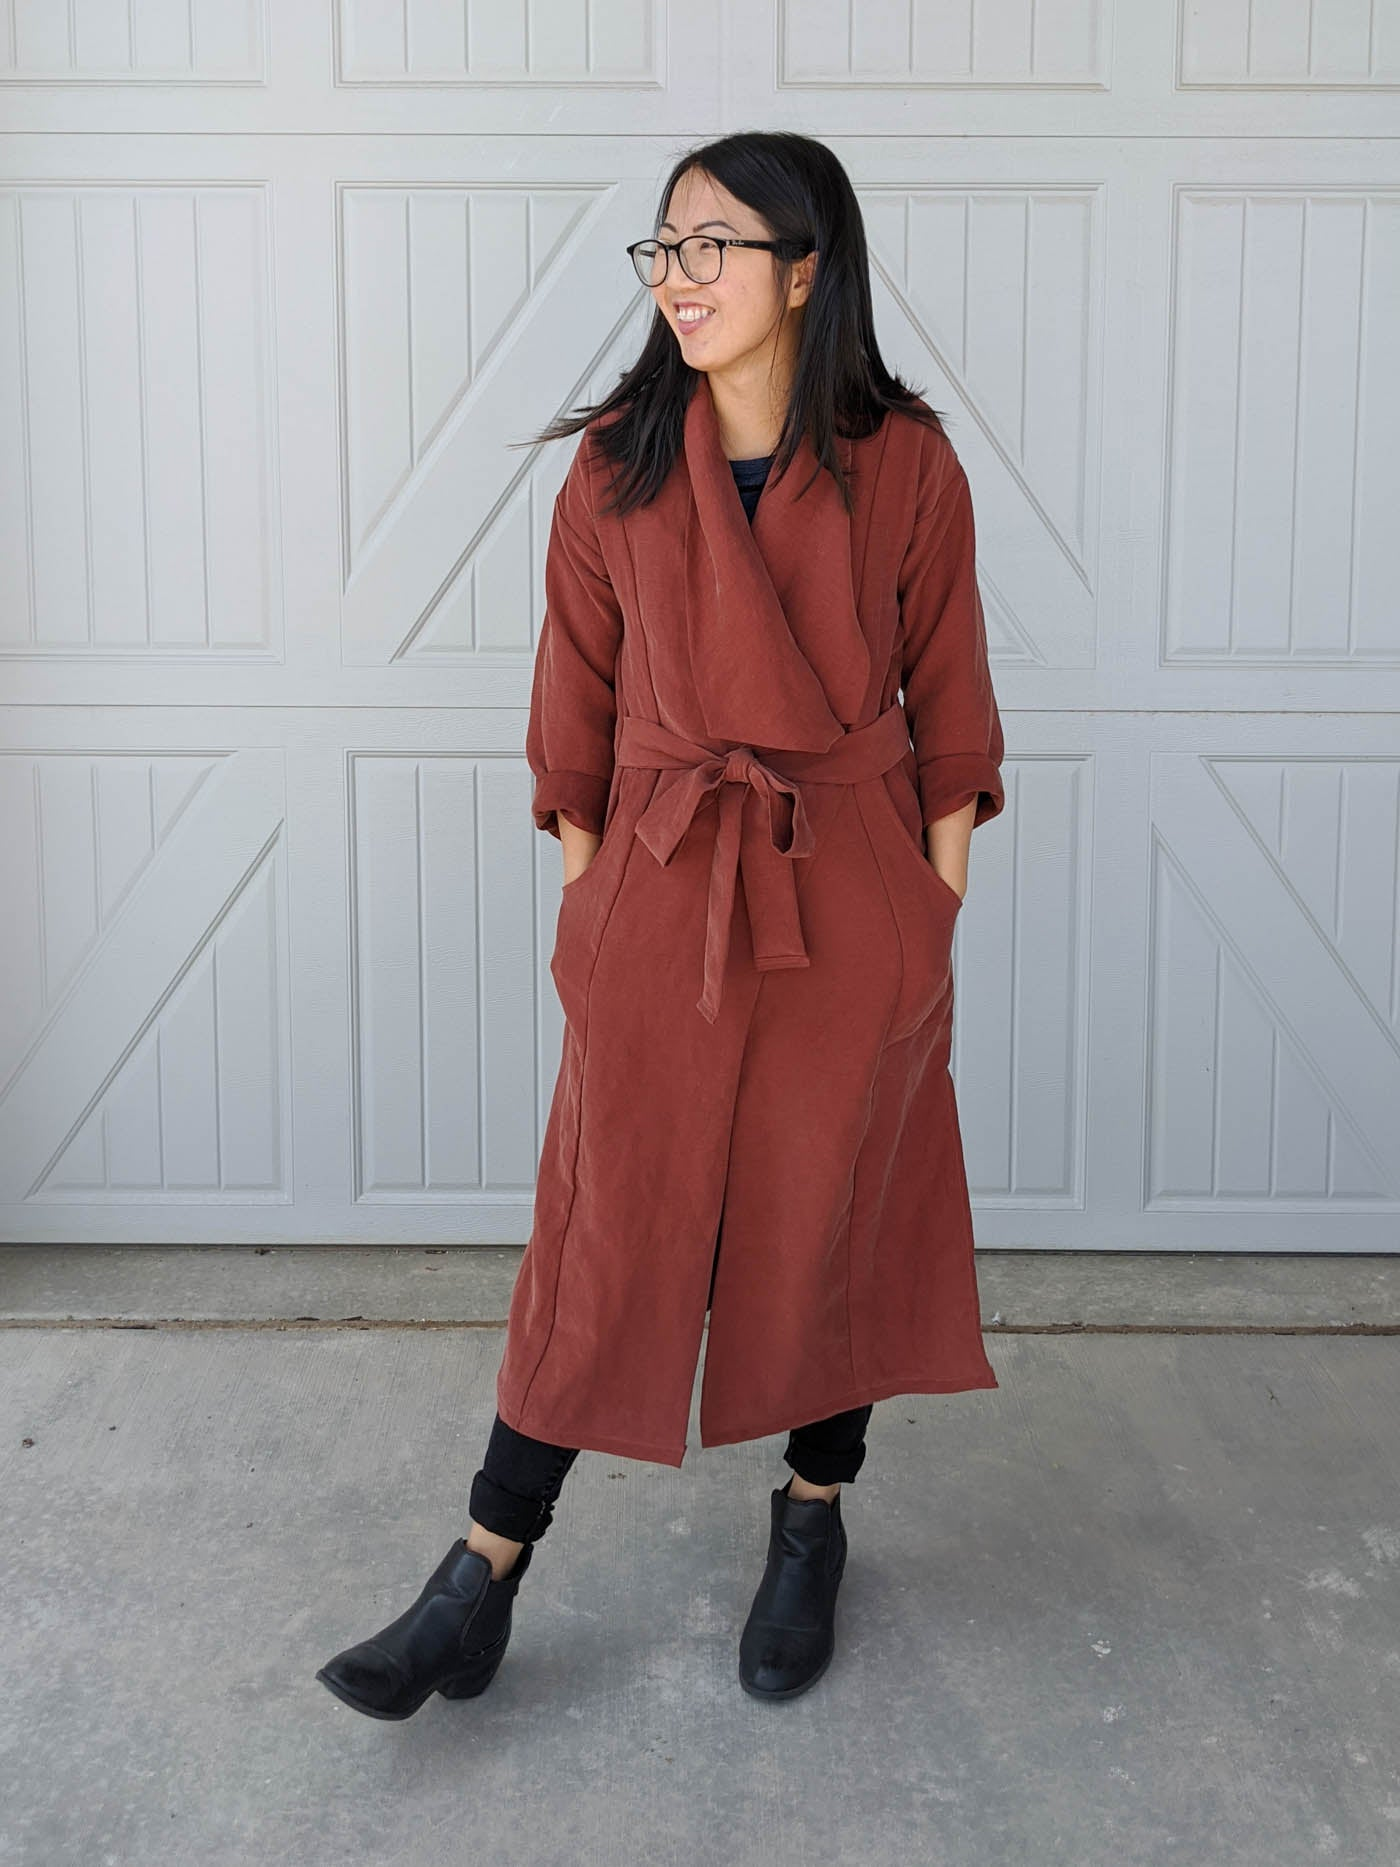 Women wearing a Cambria Duster in rust with the duster tied. Women is standing straight on to the camera, with her hands in her pocket looking off over her right shoulder and smiling. Women is standing in front of a white garage wall.